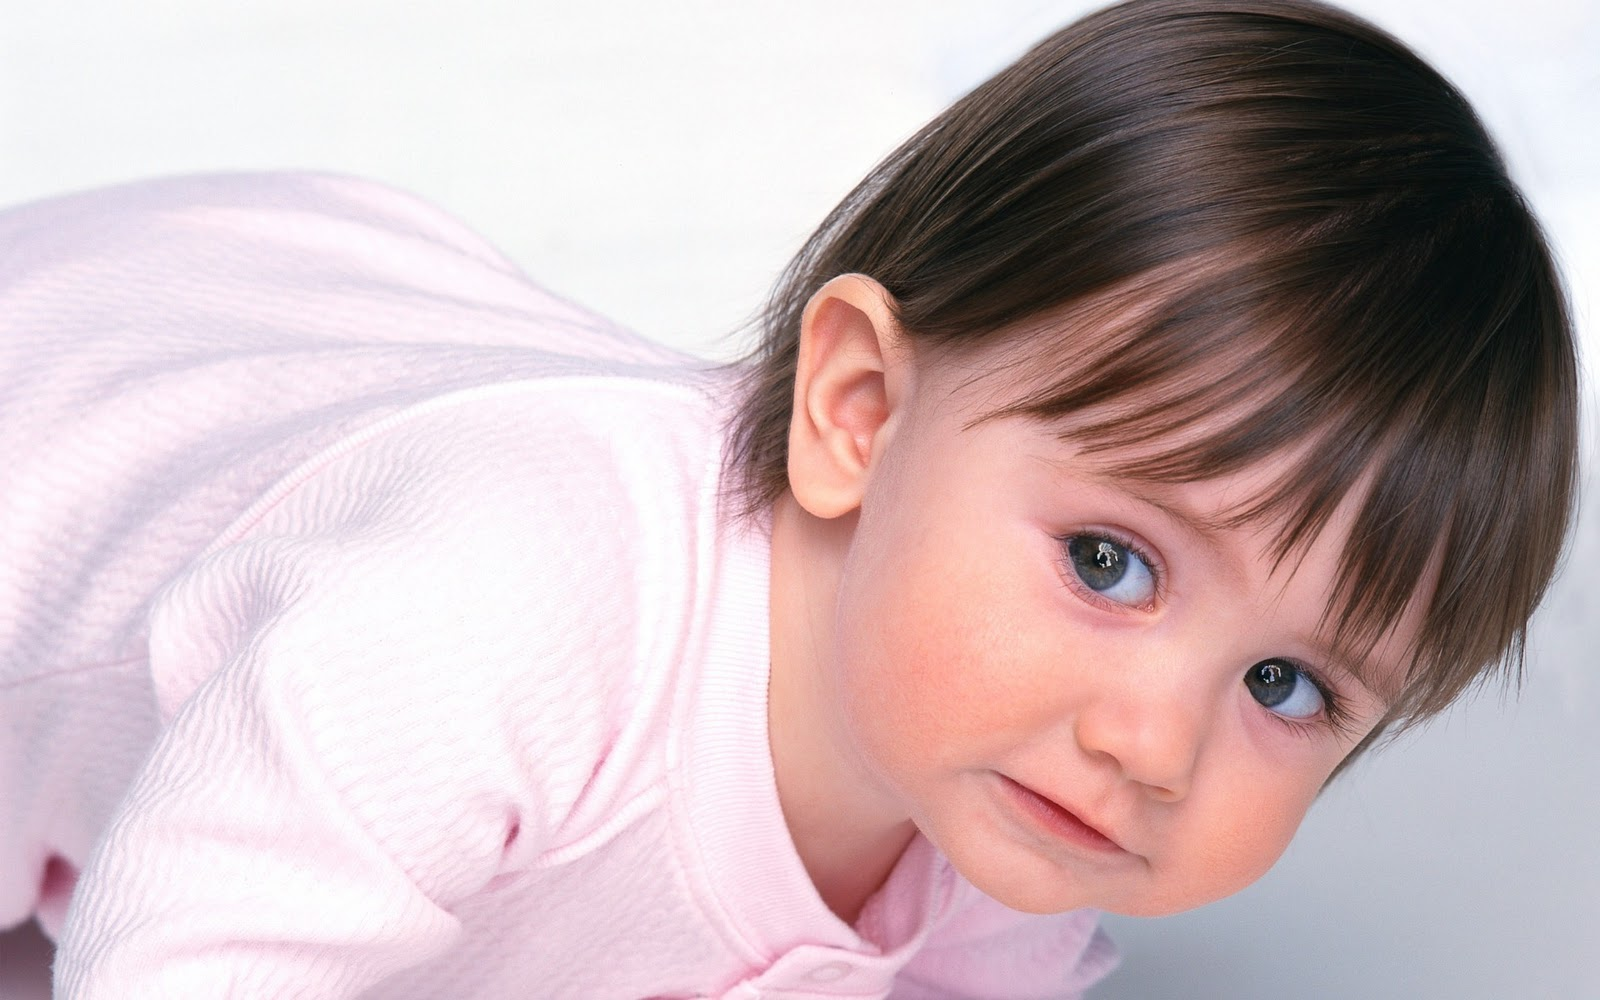 Latest Cute Kids Wallpapers Download Online Cute Kids Wallpapers Online Cute Kids Wallpaper Aberatiideprimavara